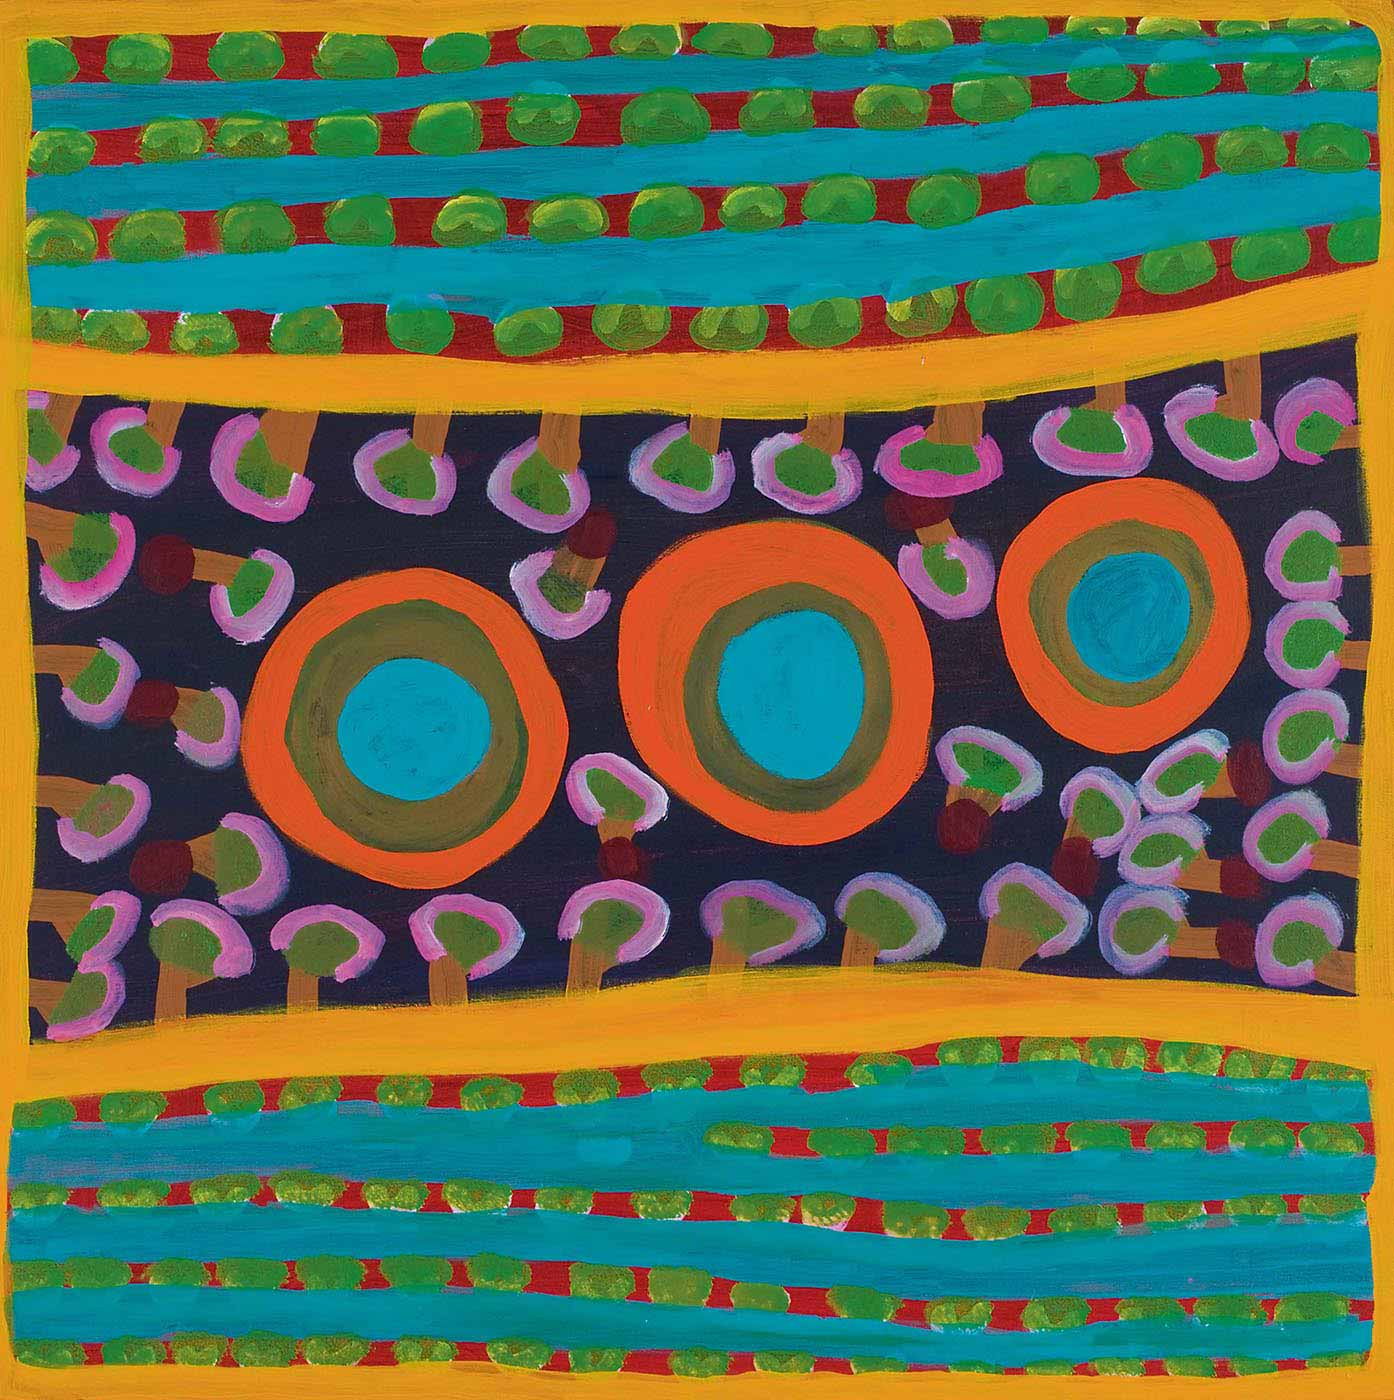 A square multicoloured painting on canvas divided into three horizontal segments, with three turquoise, green and orange concentric circles in a line across the centre, which rises slightly at the right side. These are surrounded by pink, brown and green tree-like motifs on a black background. Above and below this central section is a line of yellow then lines of turquoise separated by green discs on red stripes. - click to view larger image